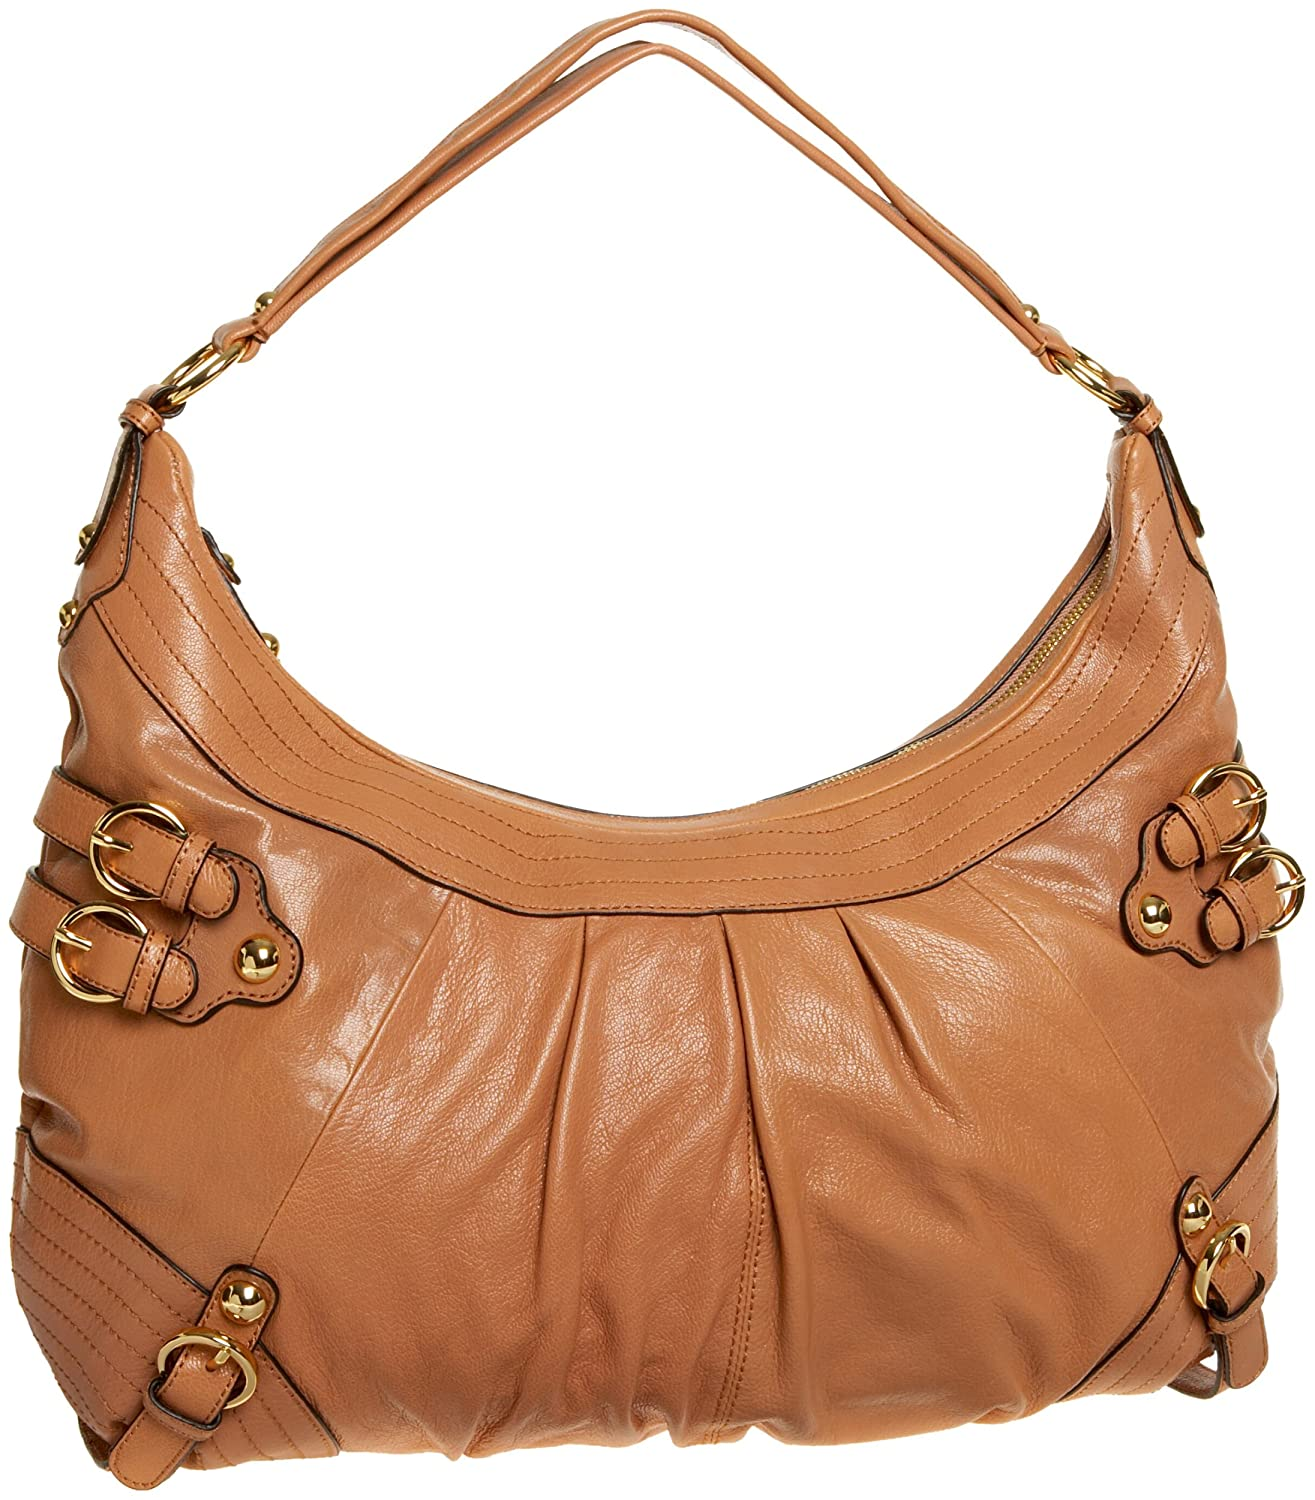 Endless.com: Hype Chabrol Hobo: Hobos - Free Overnight Shipping & Return Shipping from endless.com